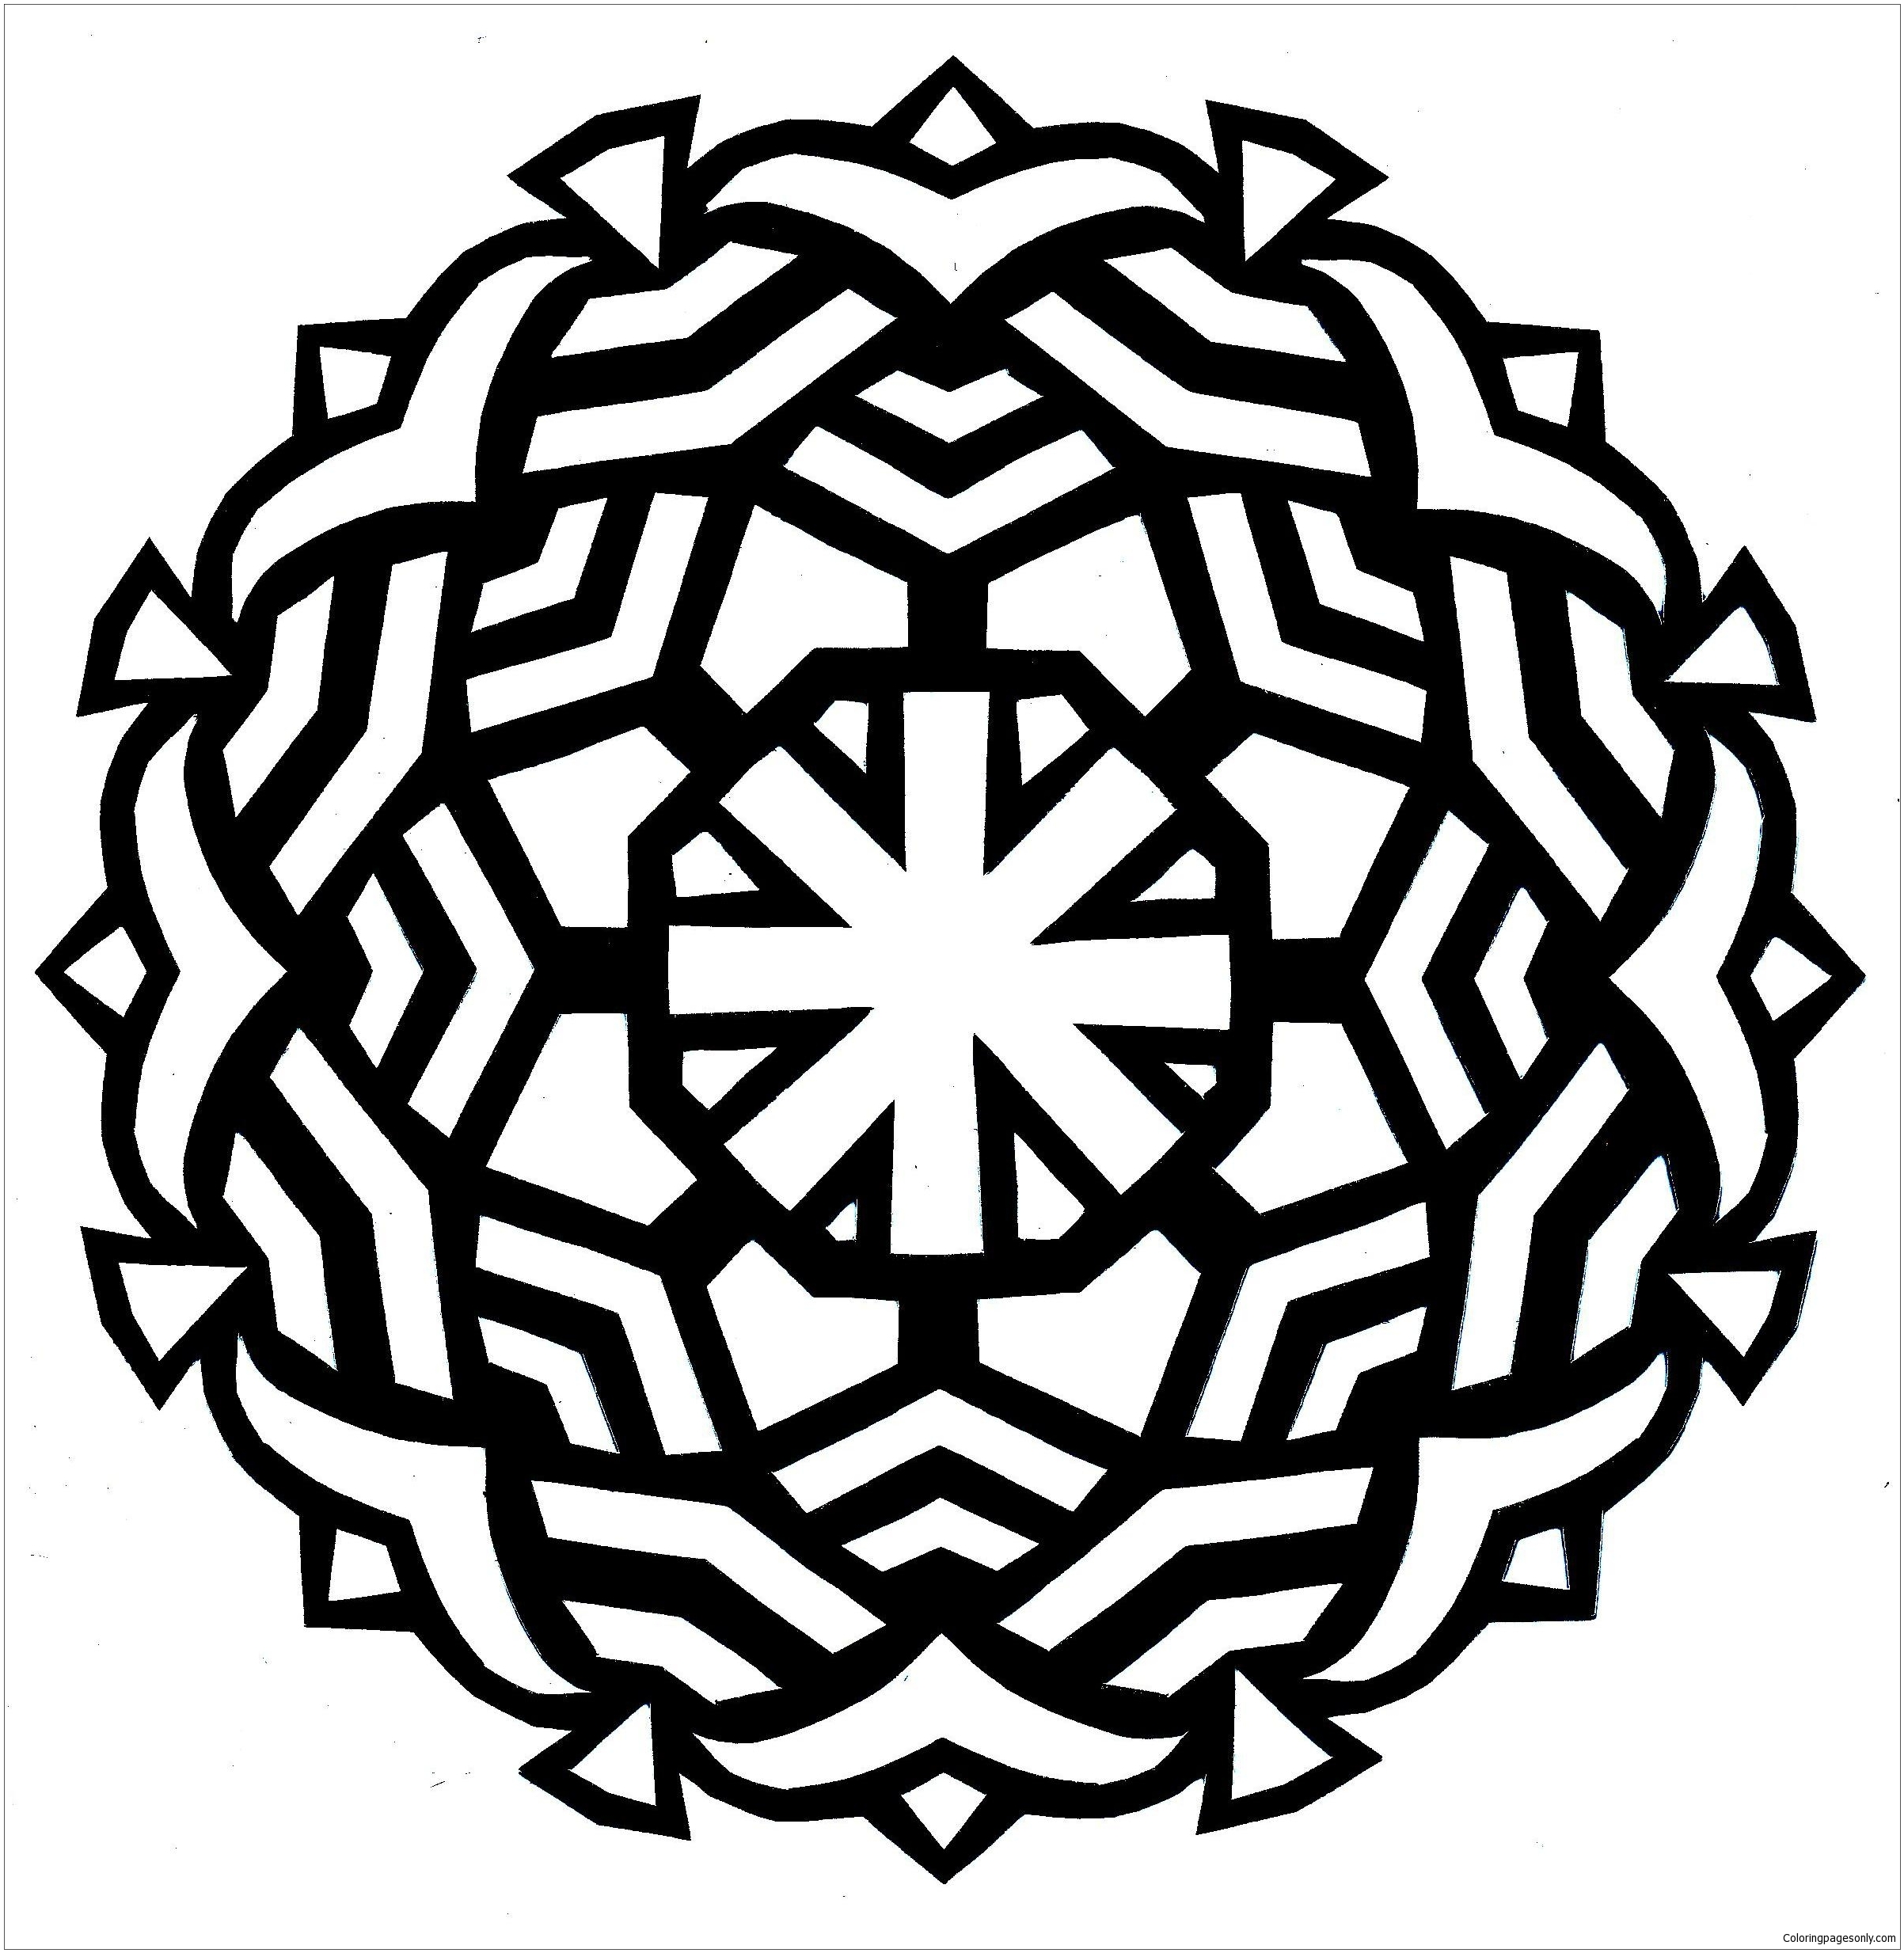 Security Easy Mandala Coloring Page - Free Coloring Pages ...